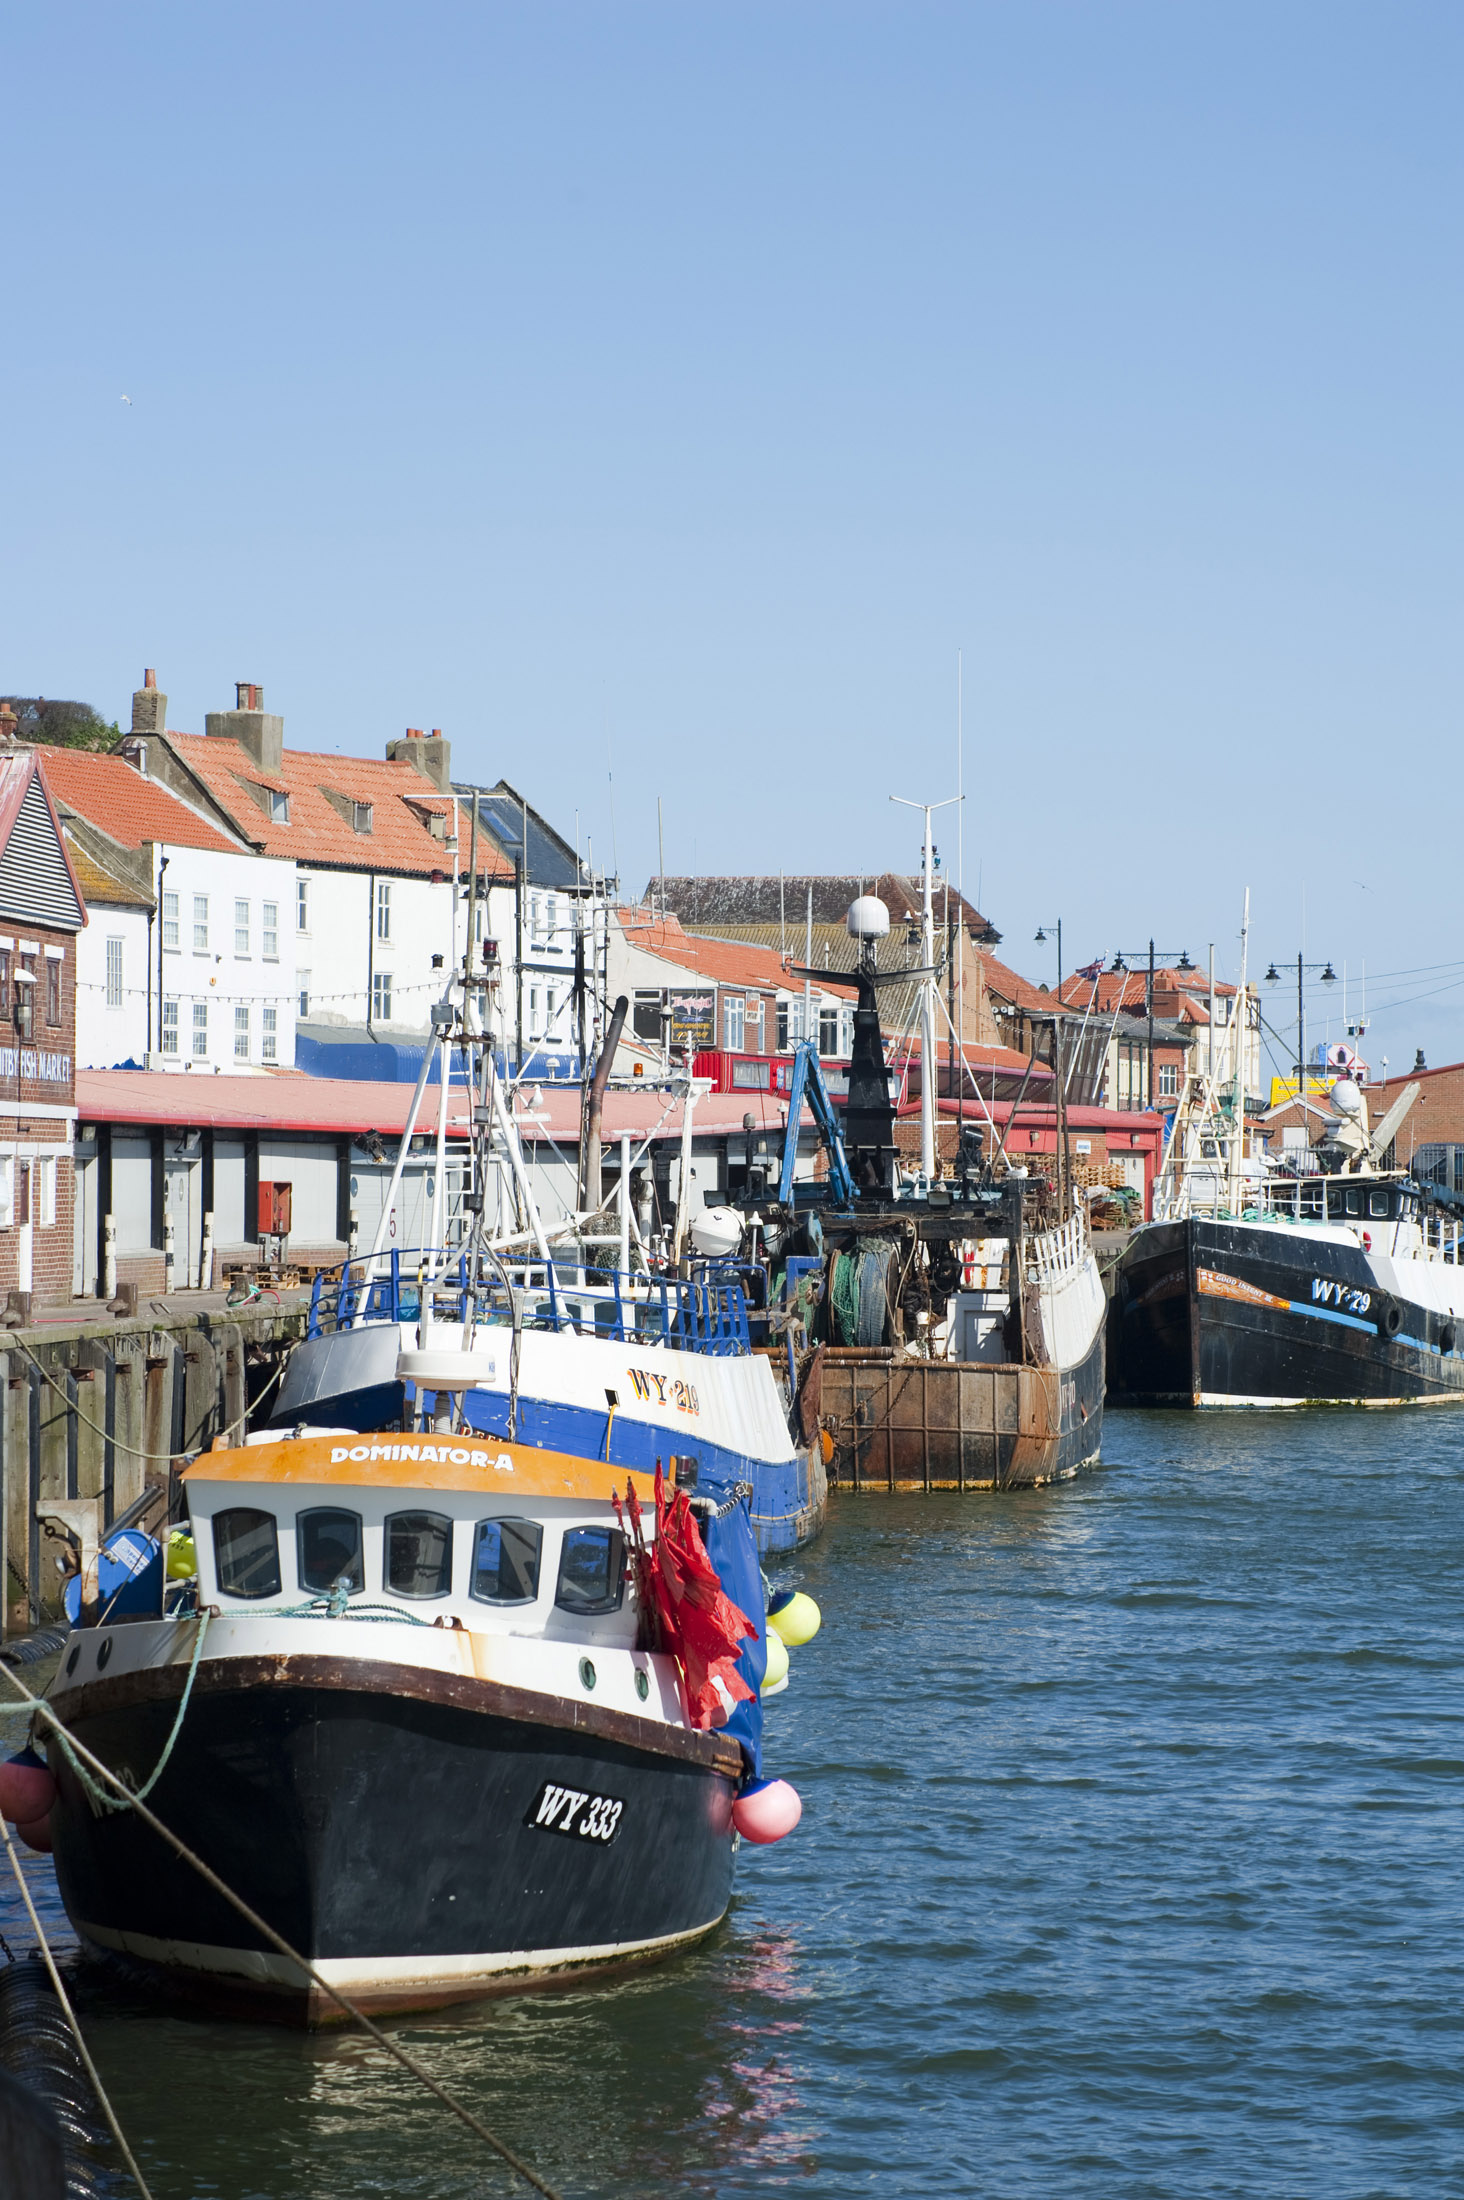 several fishing boats moored at the quaysdie near whitby fishmarket